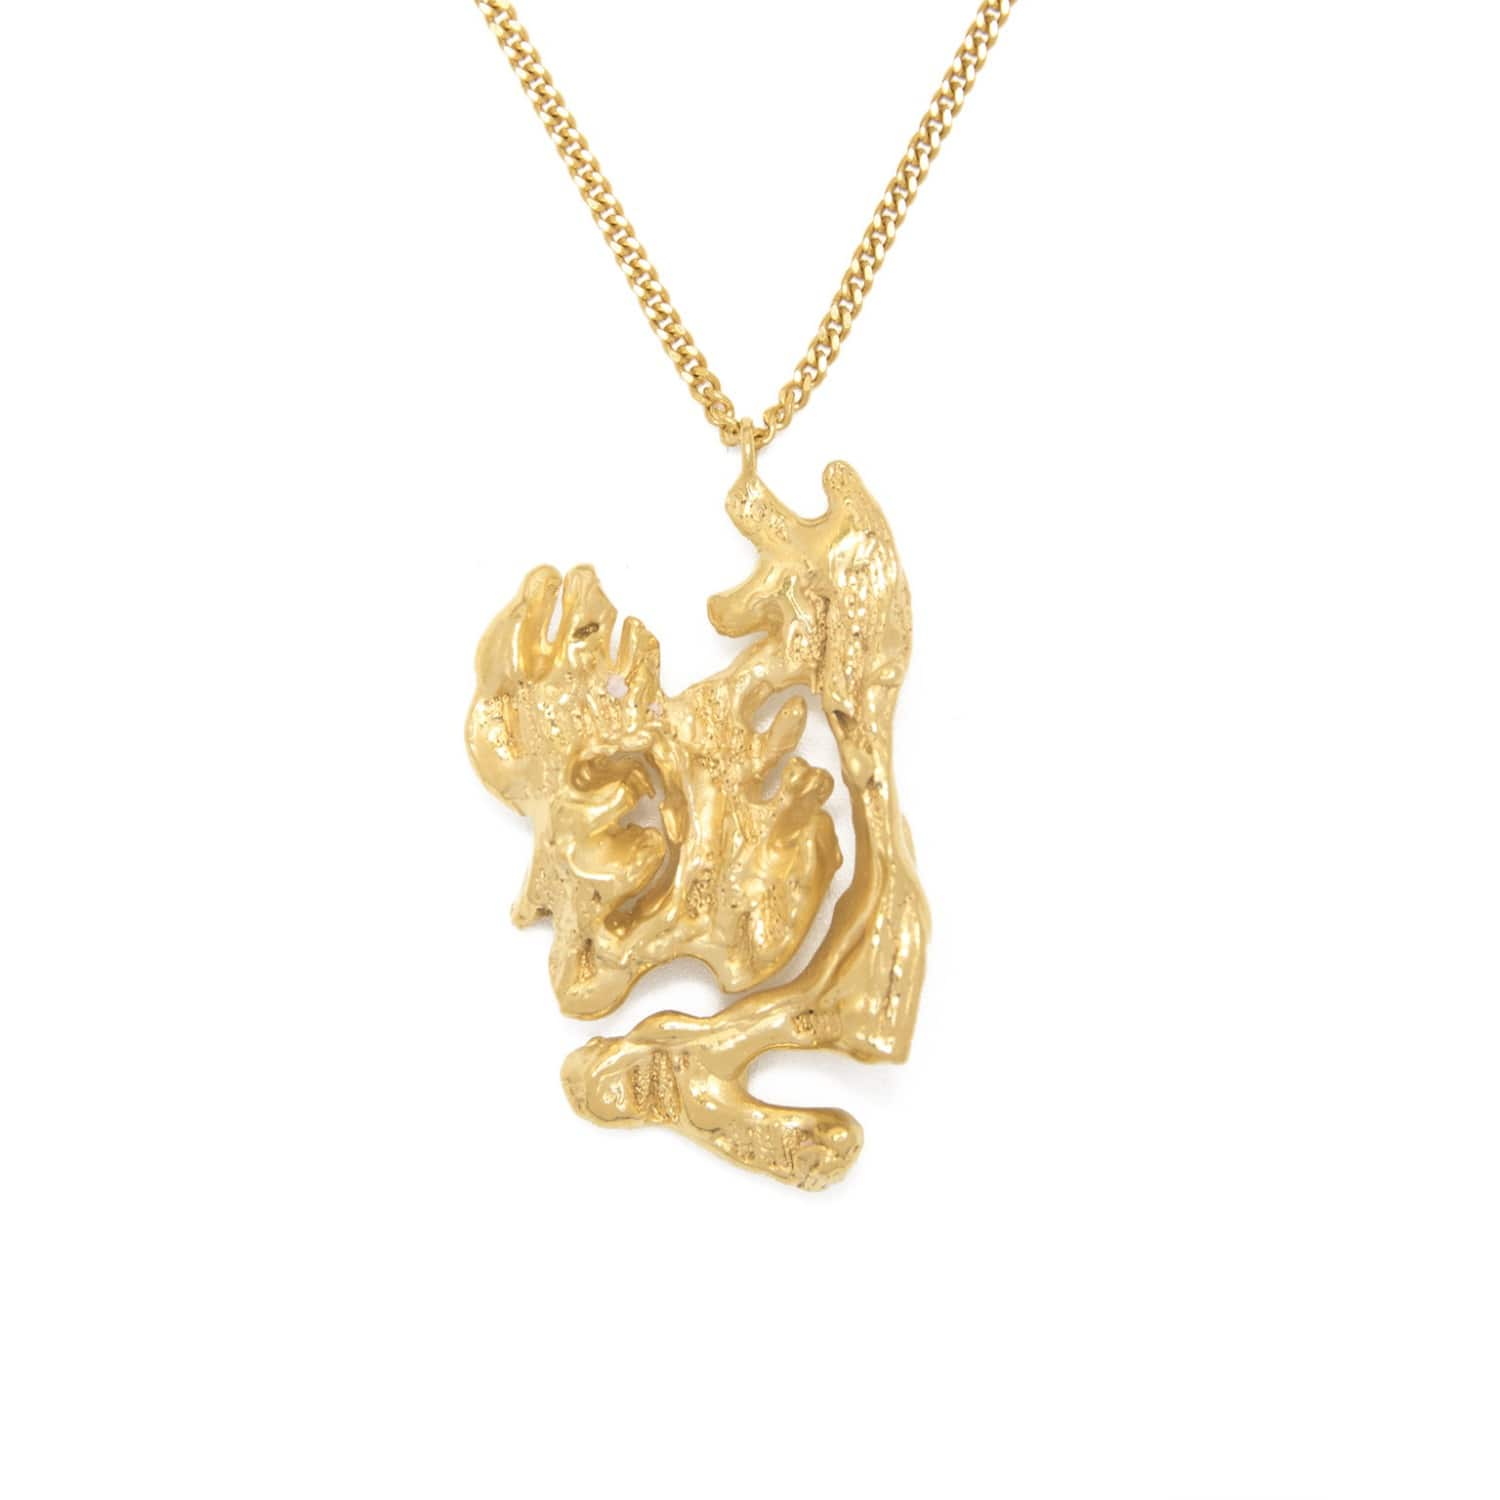 pin necklace animal brass chinese rooster coin pendant gold spirit of zodiac year the bronze charm totem